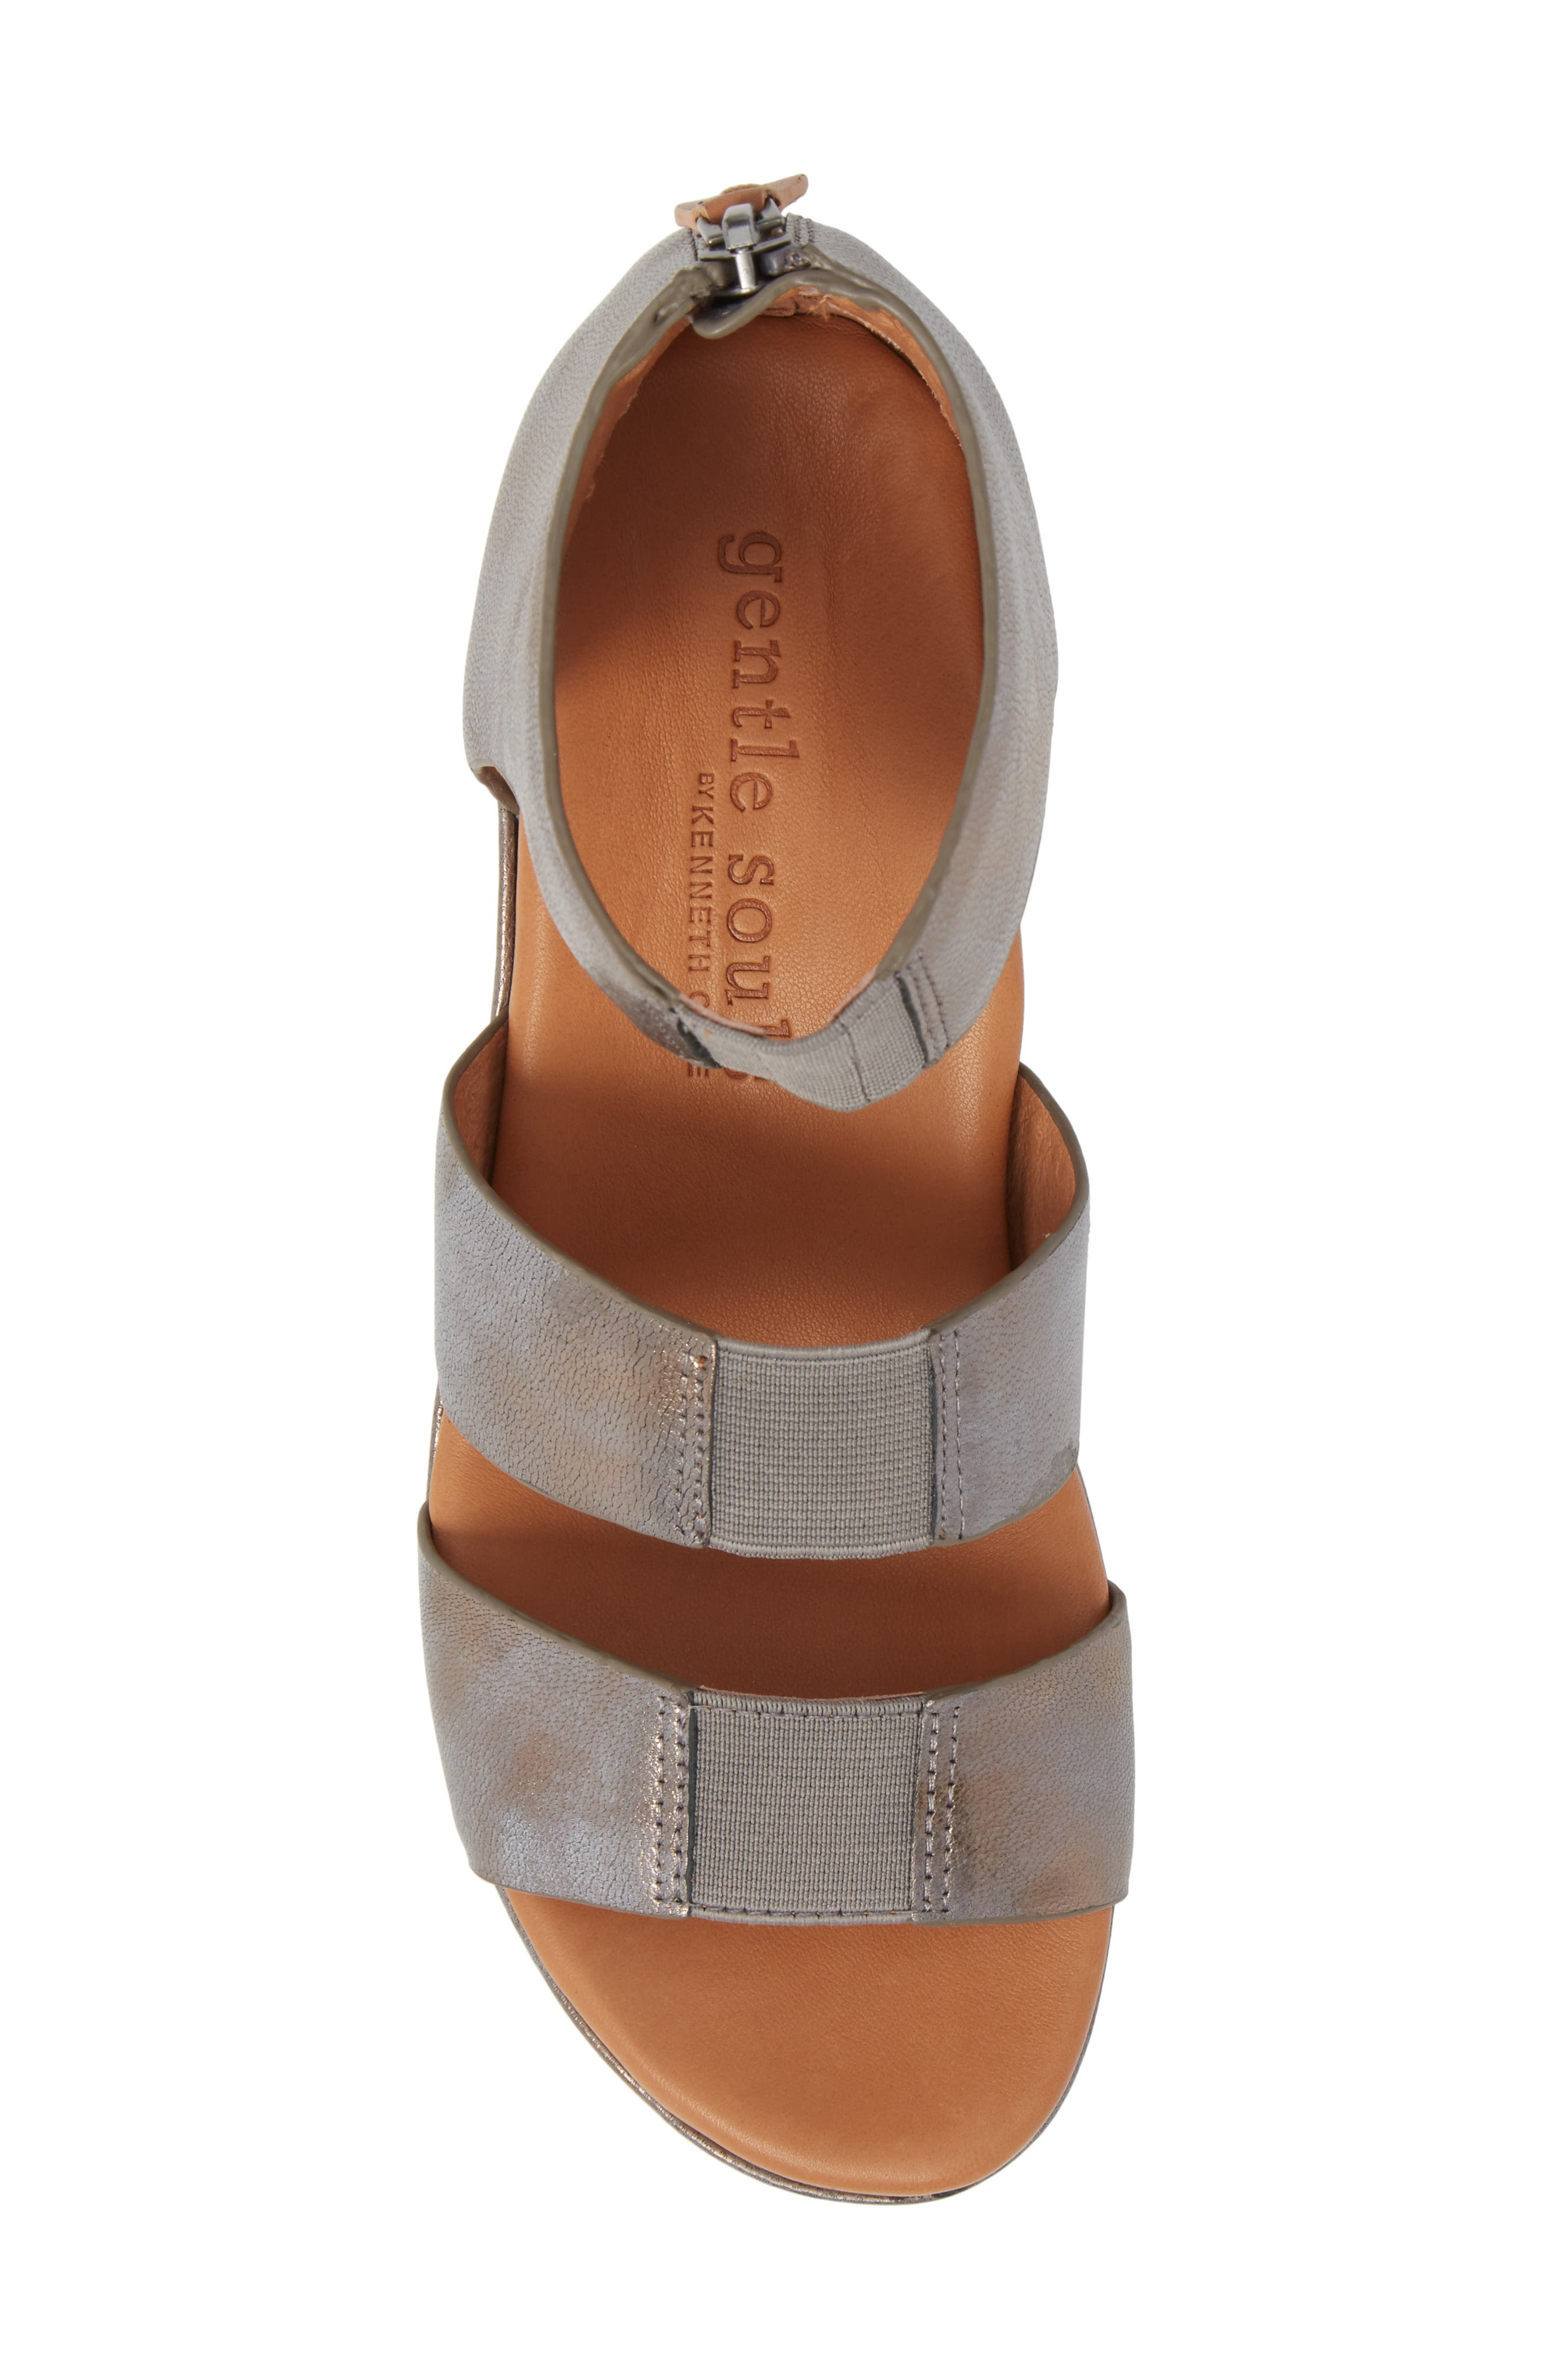 GENTLE SOULS BY KENNETH COLE, Milena Wedge Sandal, Alternate thumbnail 5, color, PEWTER METALLIC LEATHER